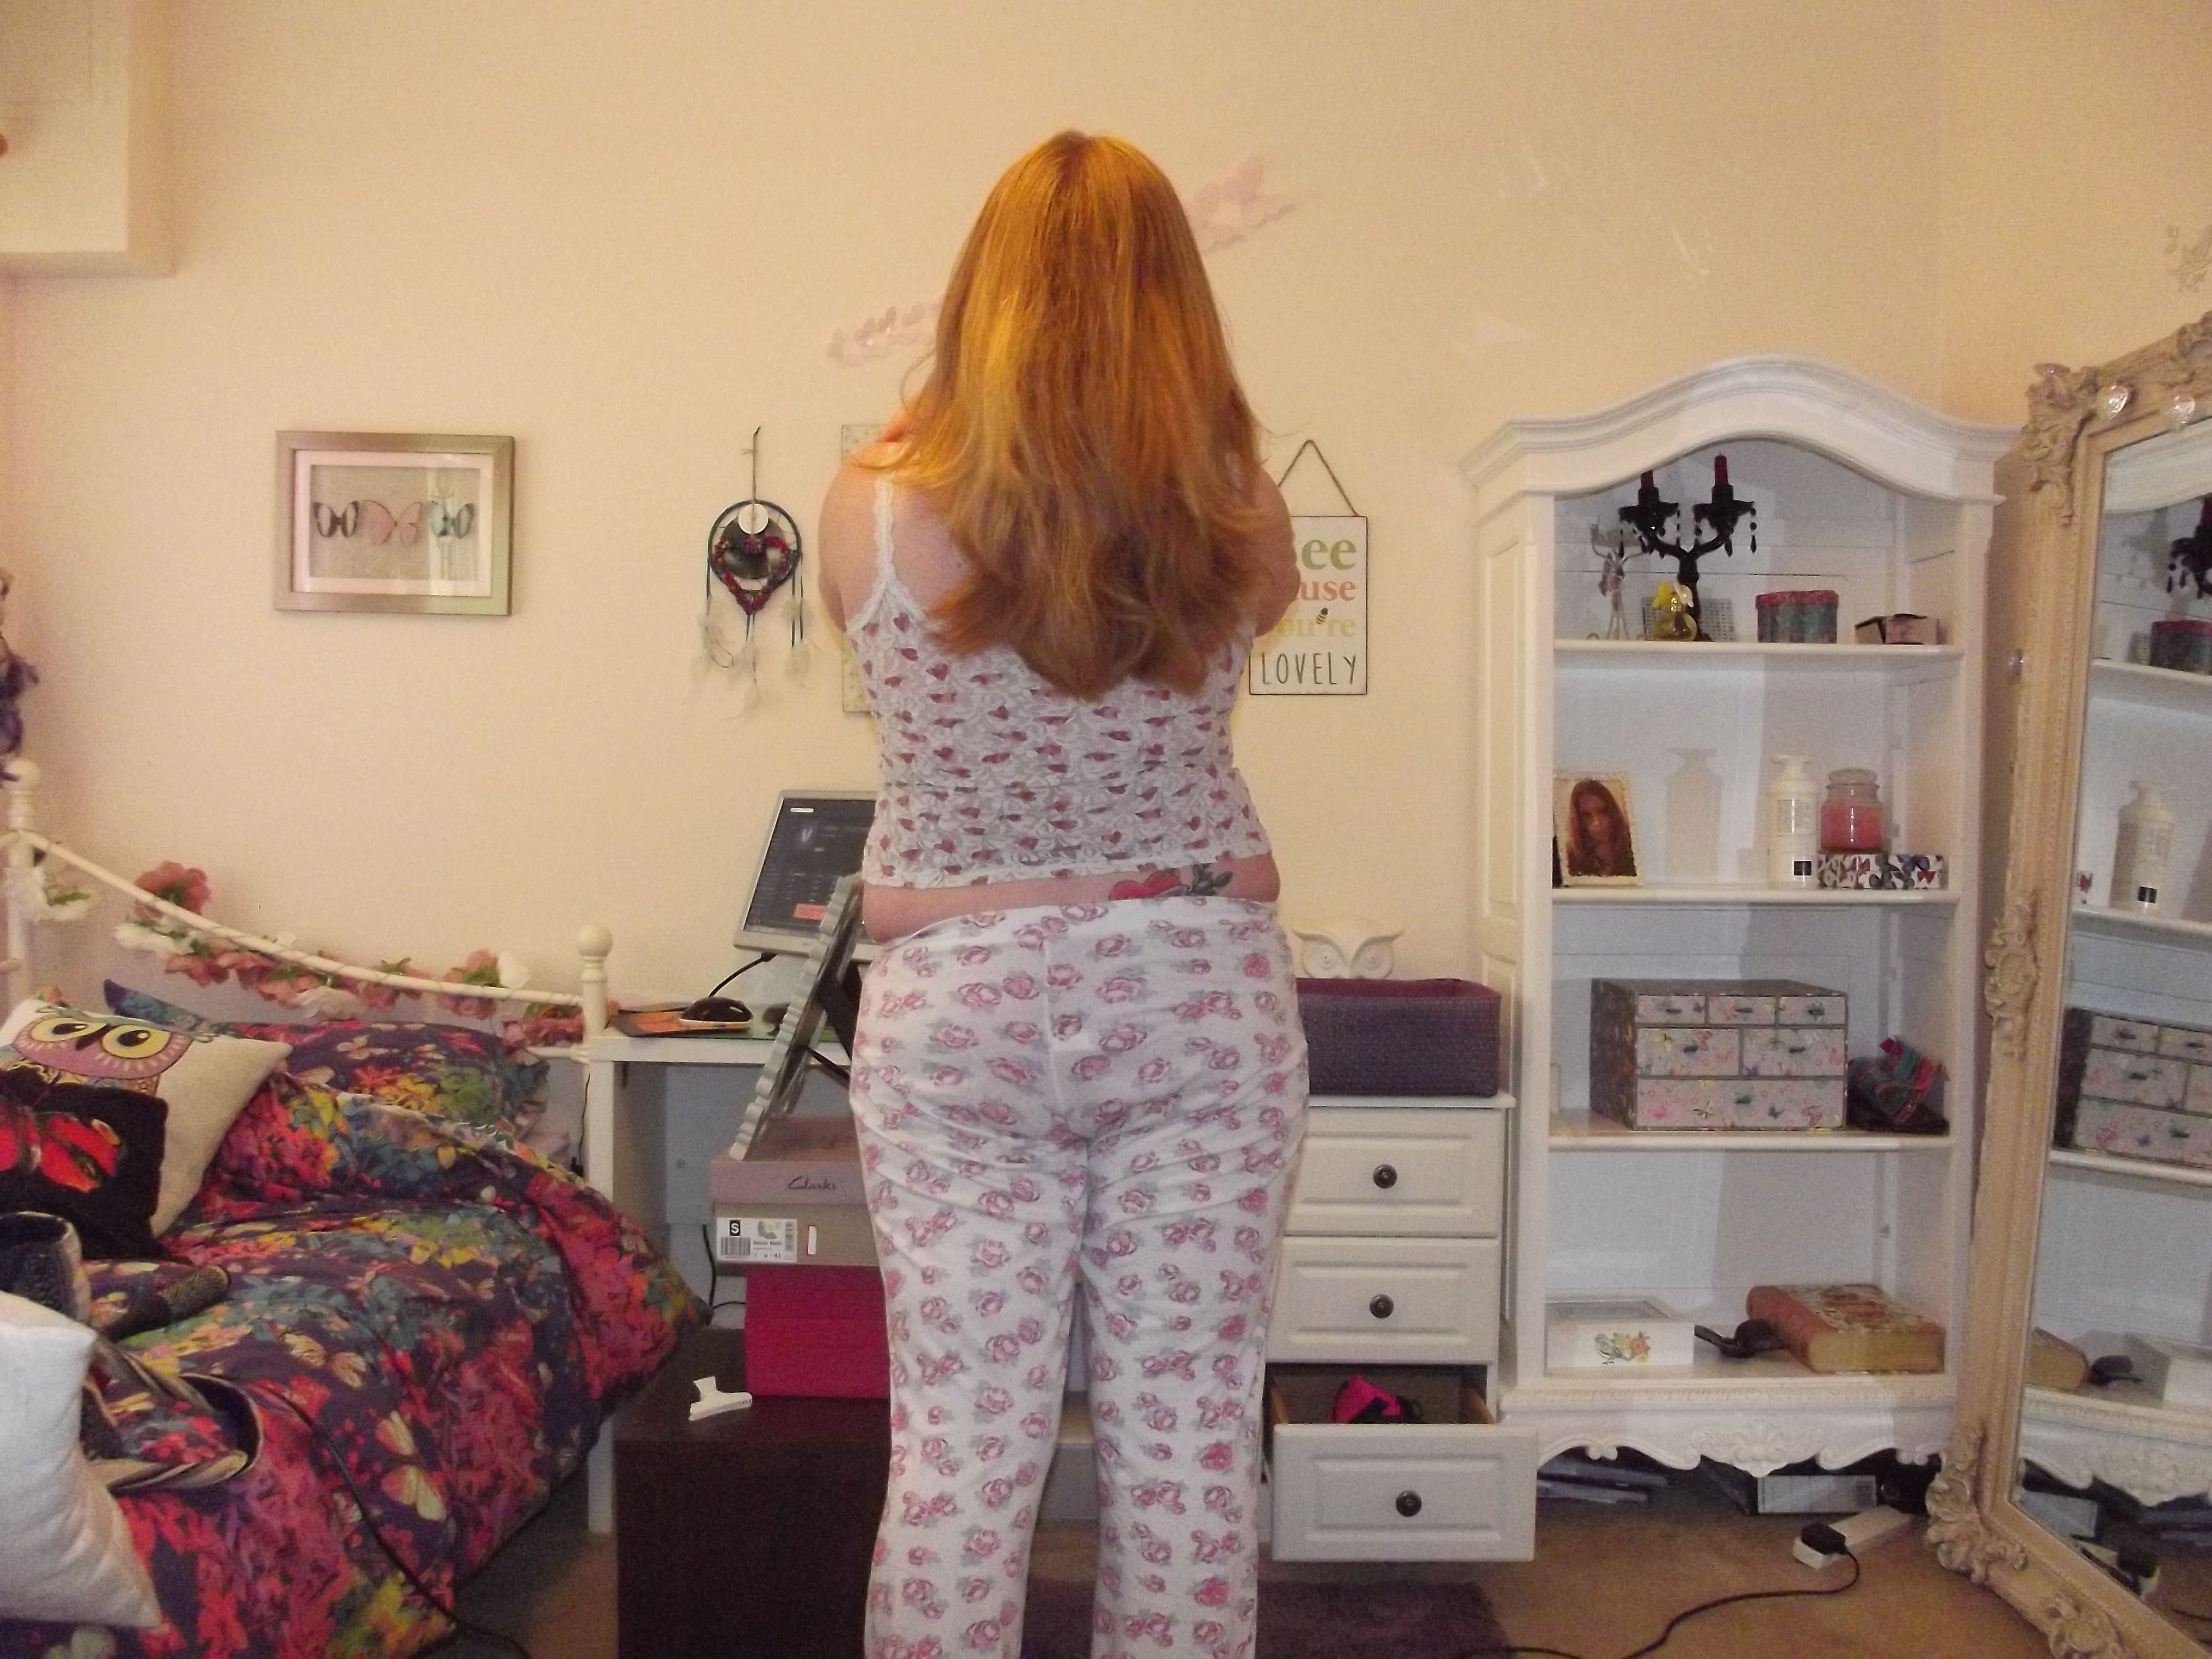 My natural red hair getting nice and long too from behind